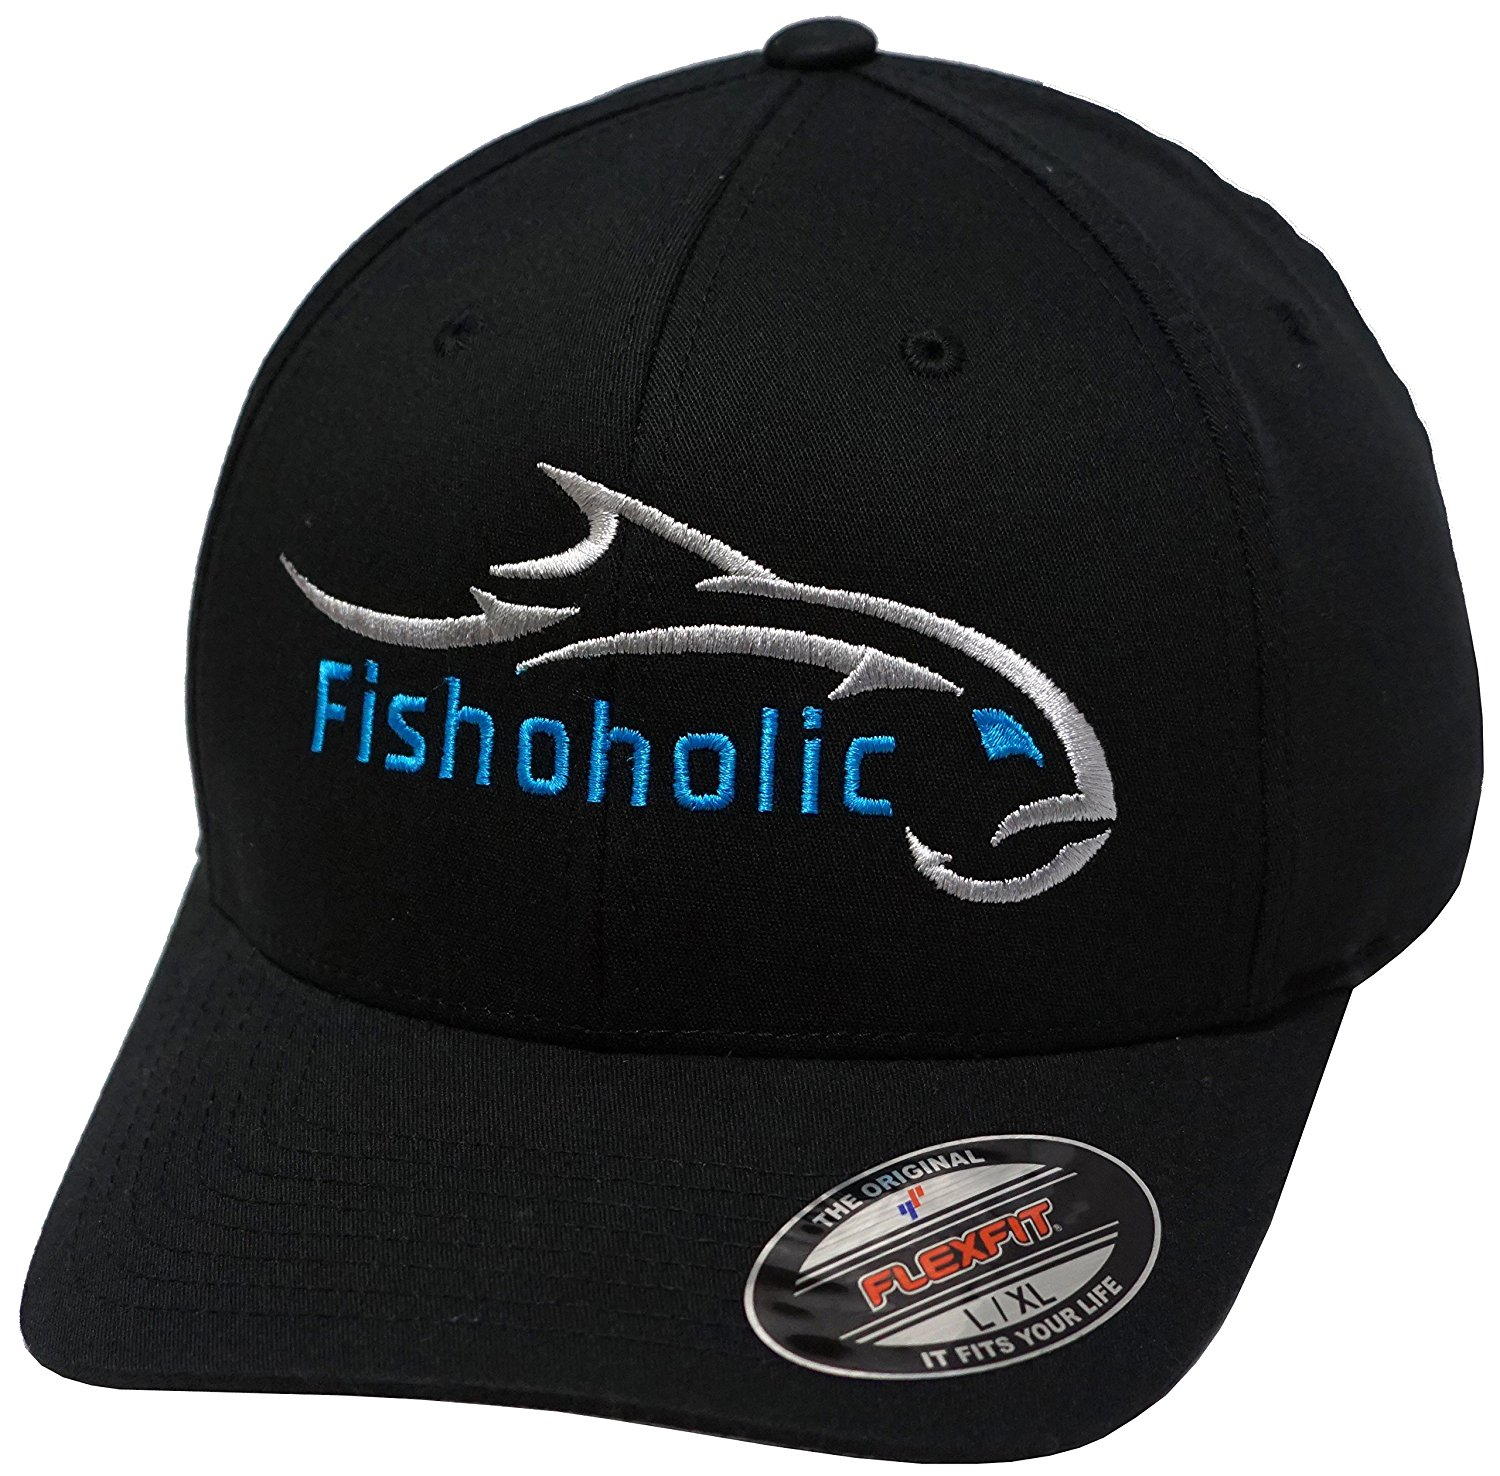 Fishoholic Baseball Fishing Hat w' Angry Fish Logo & Bend Your Rod on Trucker Snap Back or Flexfit. USPTO Registered TM Fishaholic. Saltwater Fly Fish Bass Trout Hunt Quad BBQ Tailgate, Join our TEAM.